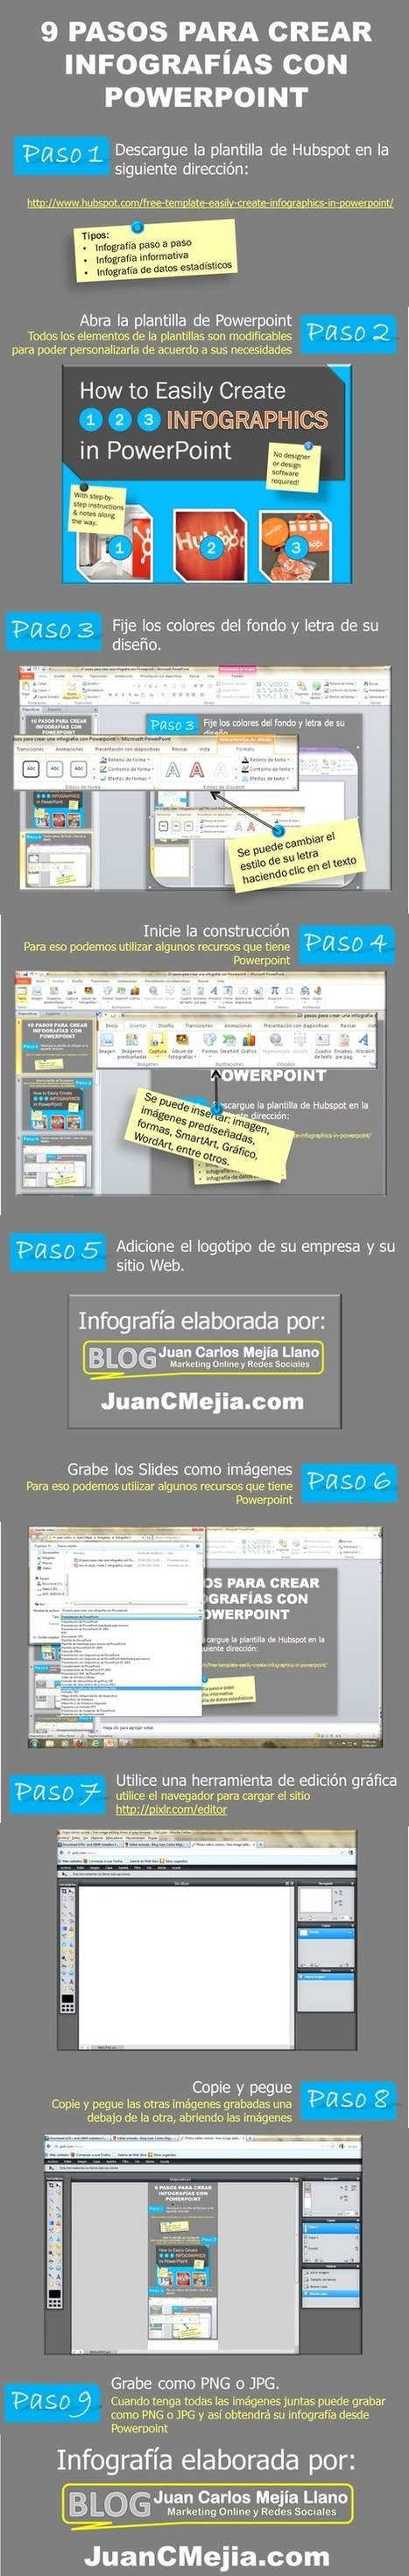 9 pasos para crear infografías con Power Point... o con Impress | Herramientas TIC para el aula | Scoop.it